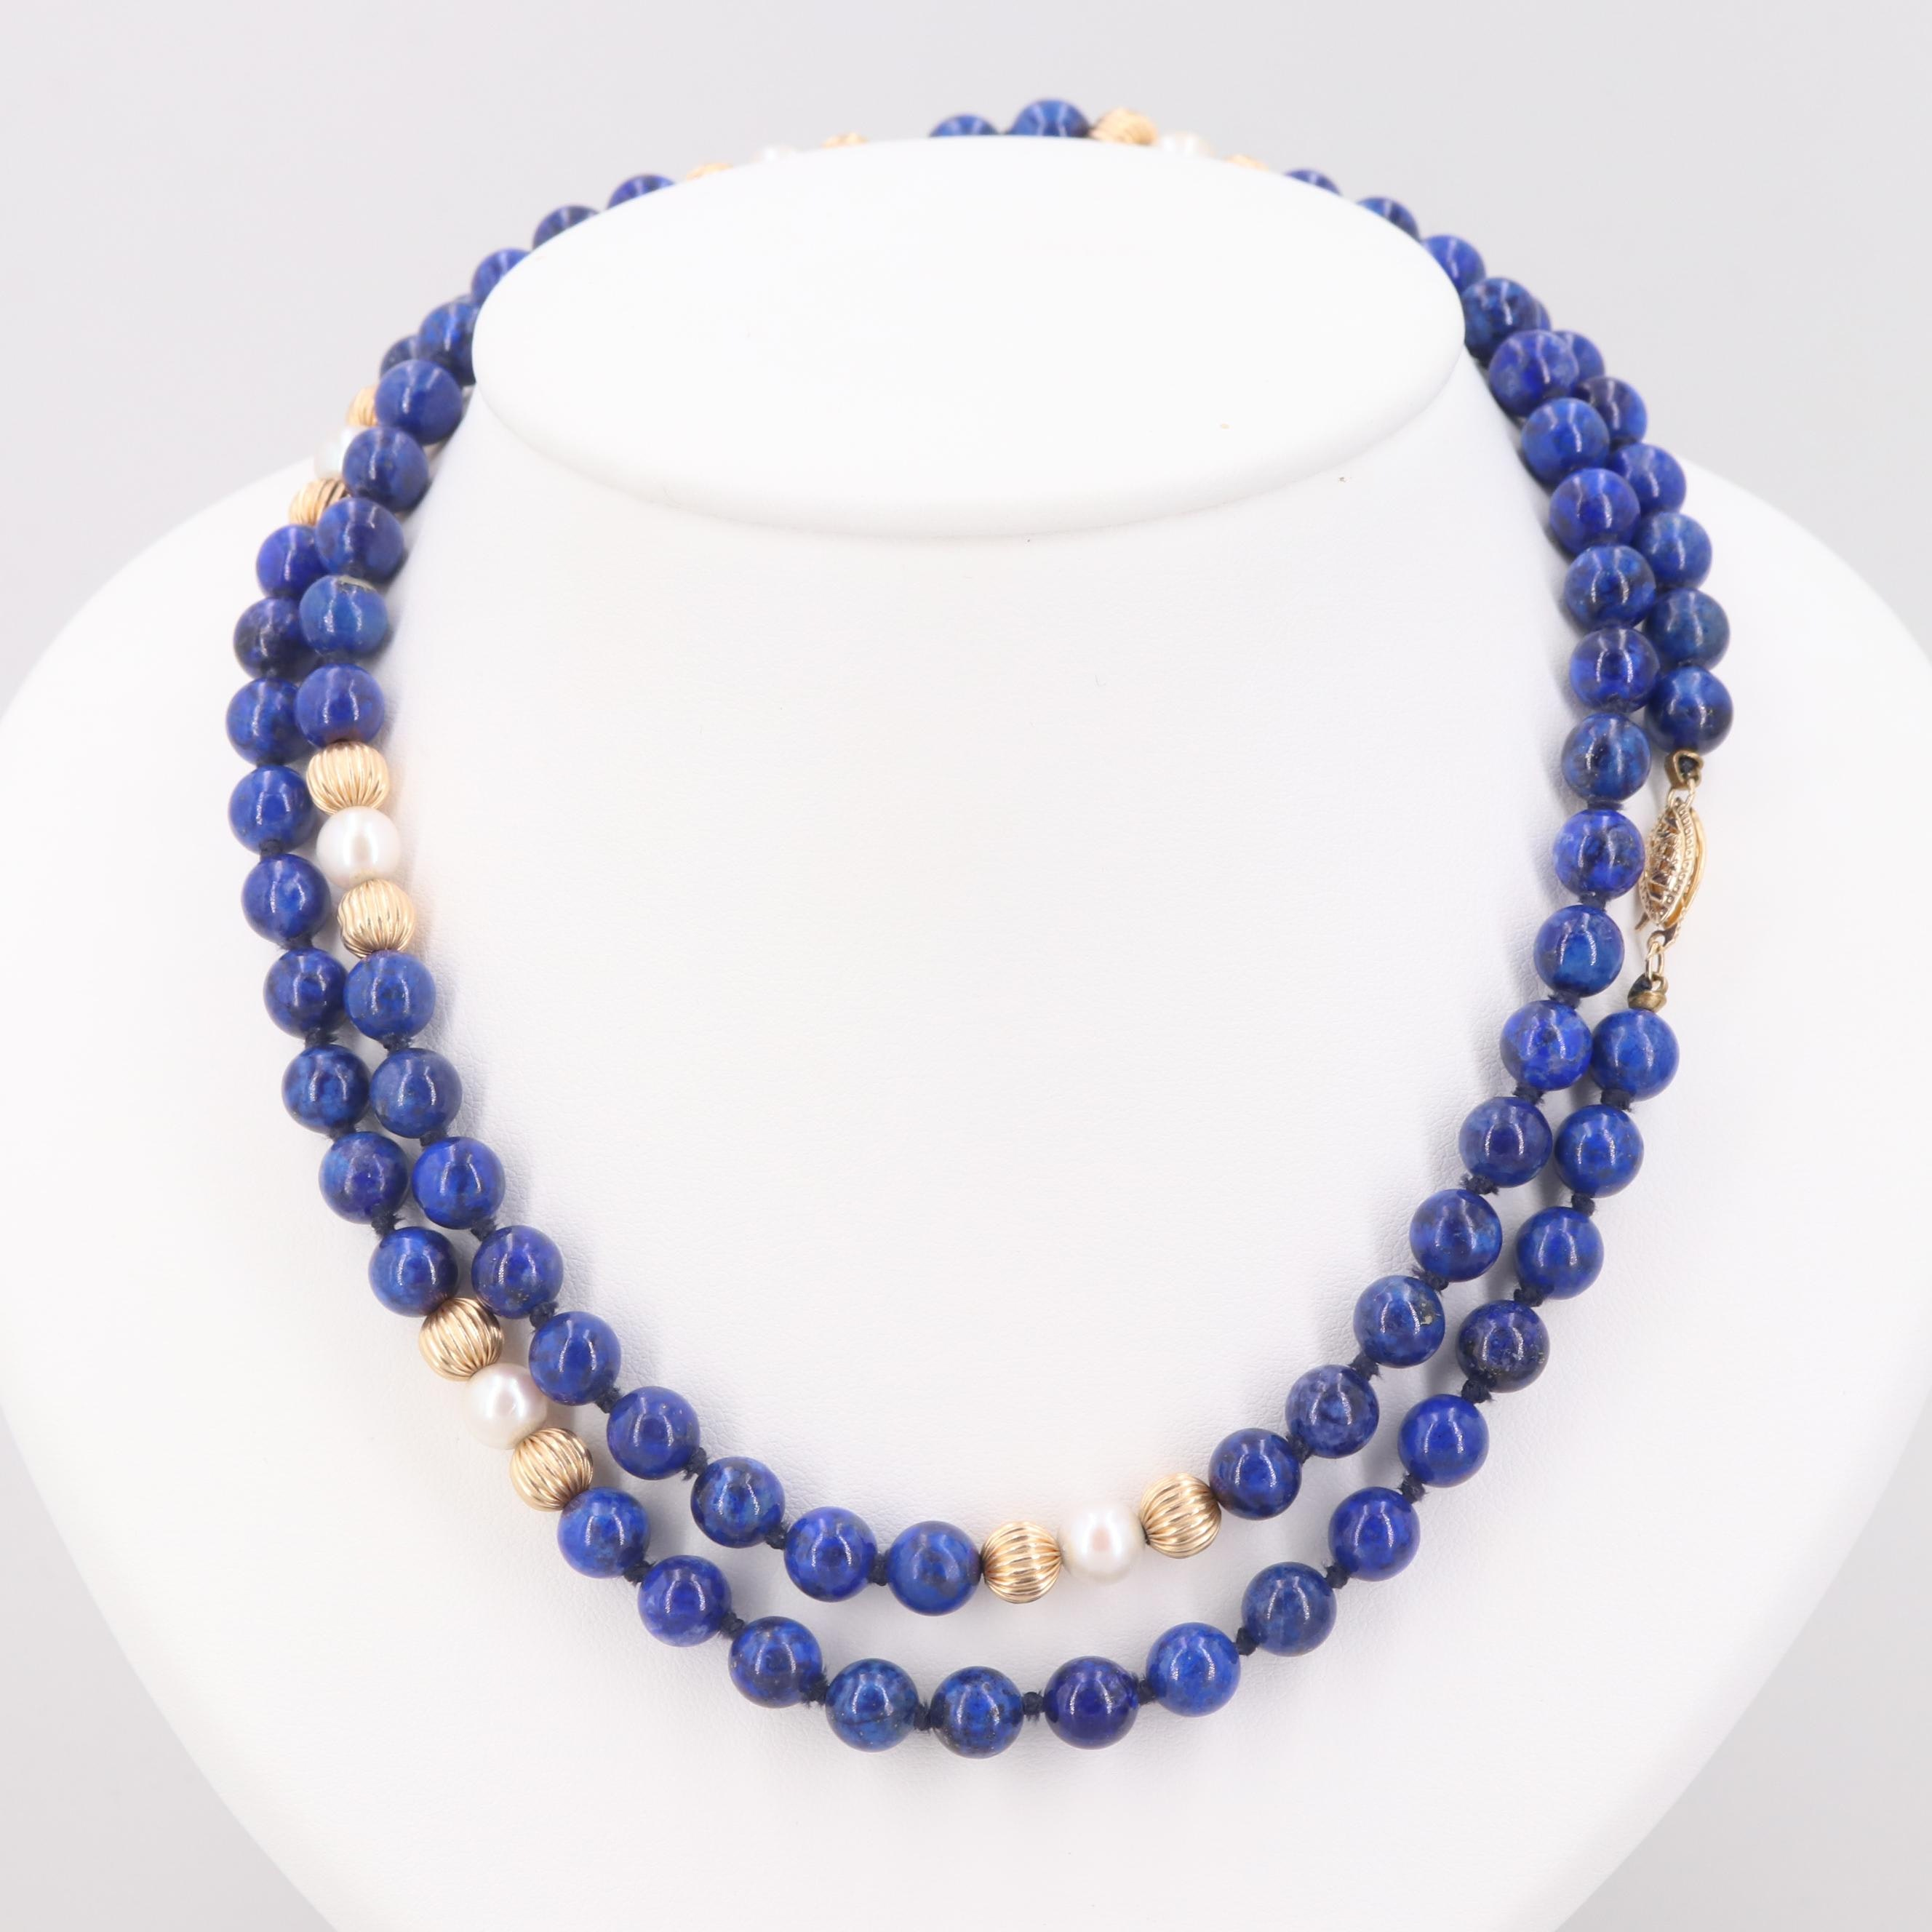 14K Yellow Gold Lapis Lazuli and Cultured Pearl Hand Knotted Beaded Necklace